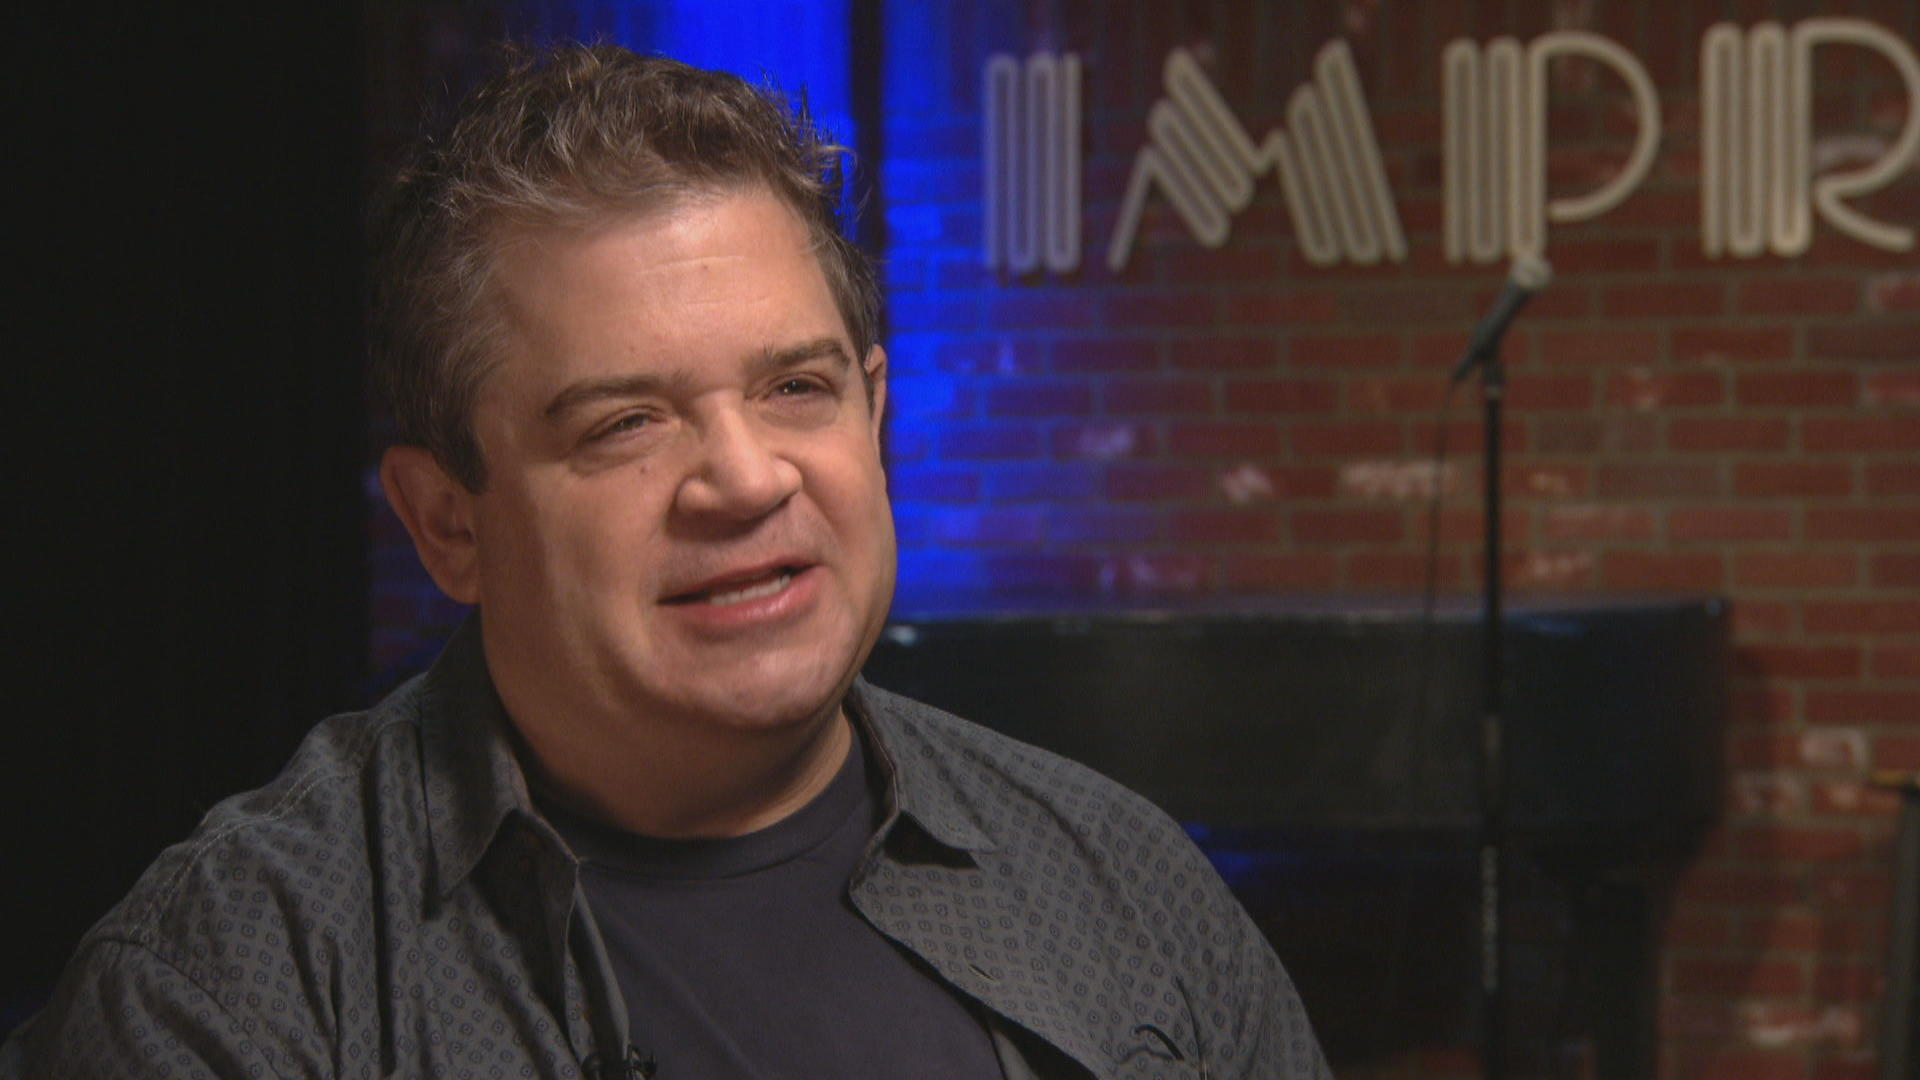 Comedian Patton Oswalt on loss, new love and finding the funny -- even in despair